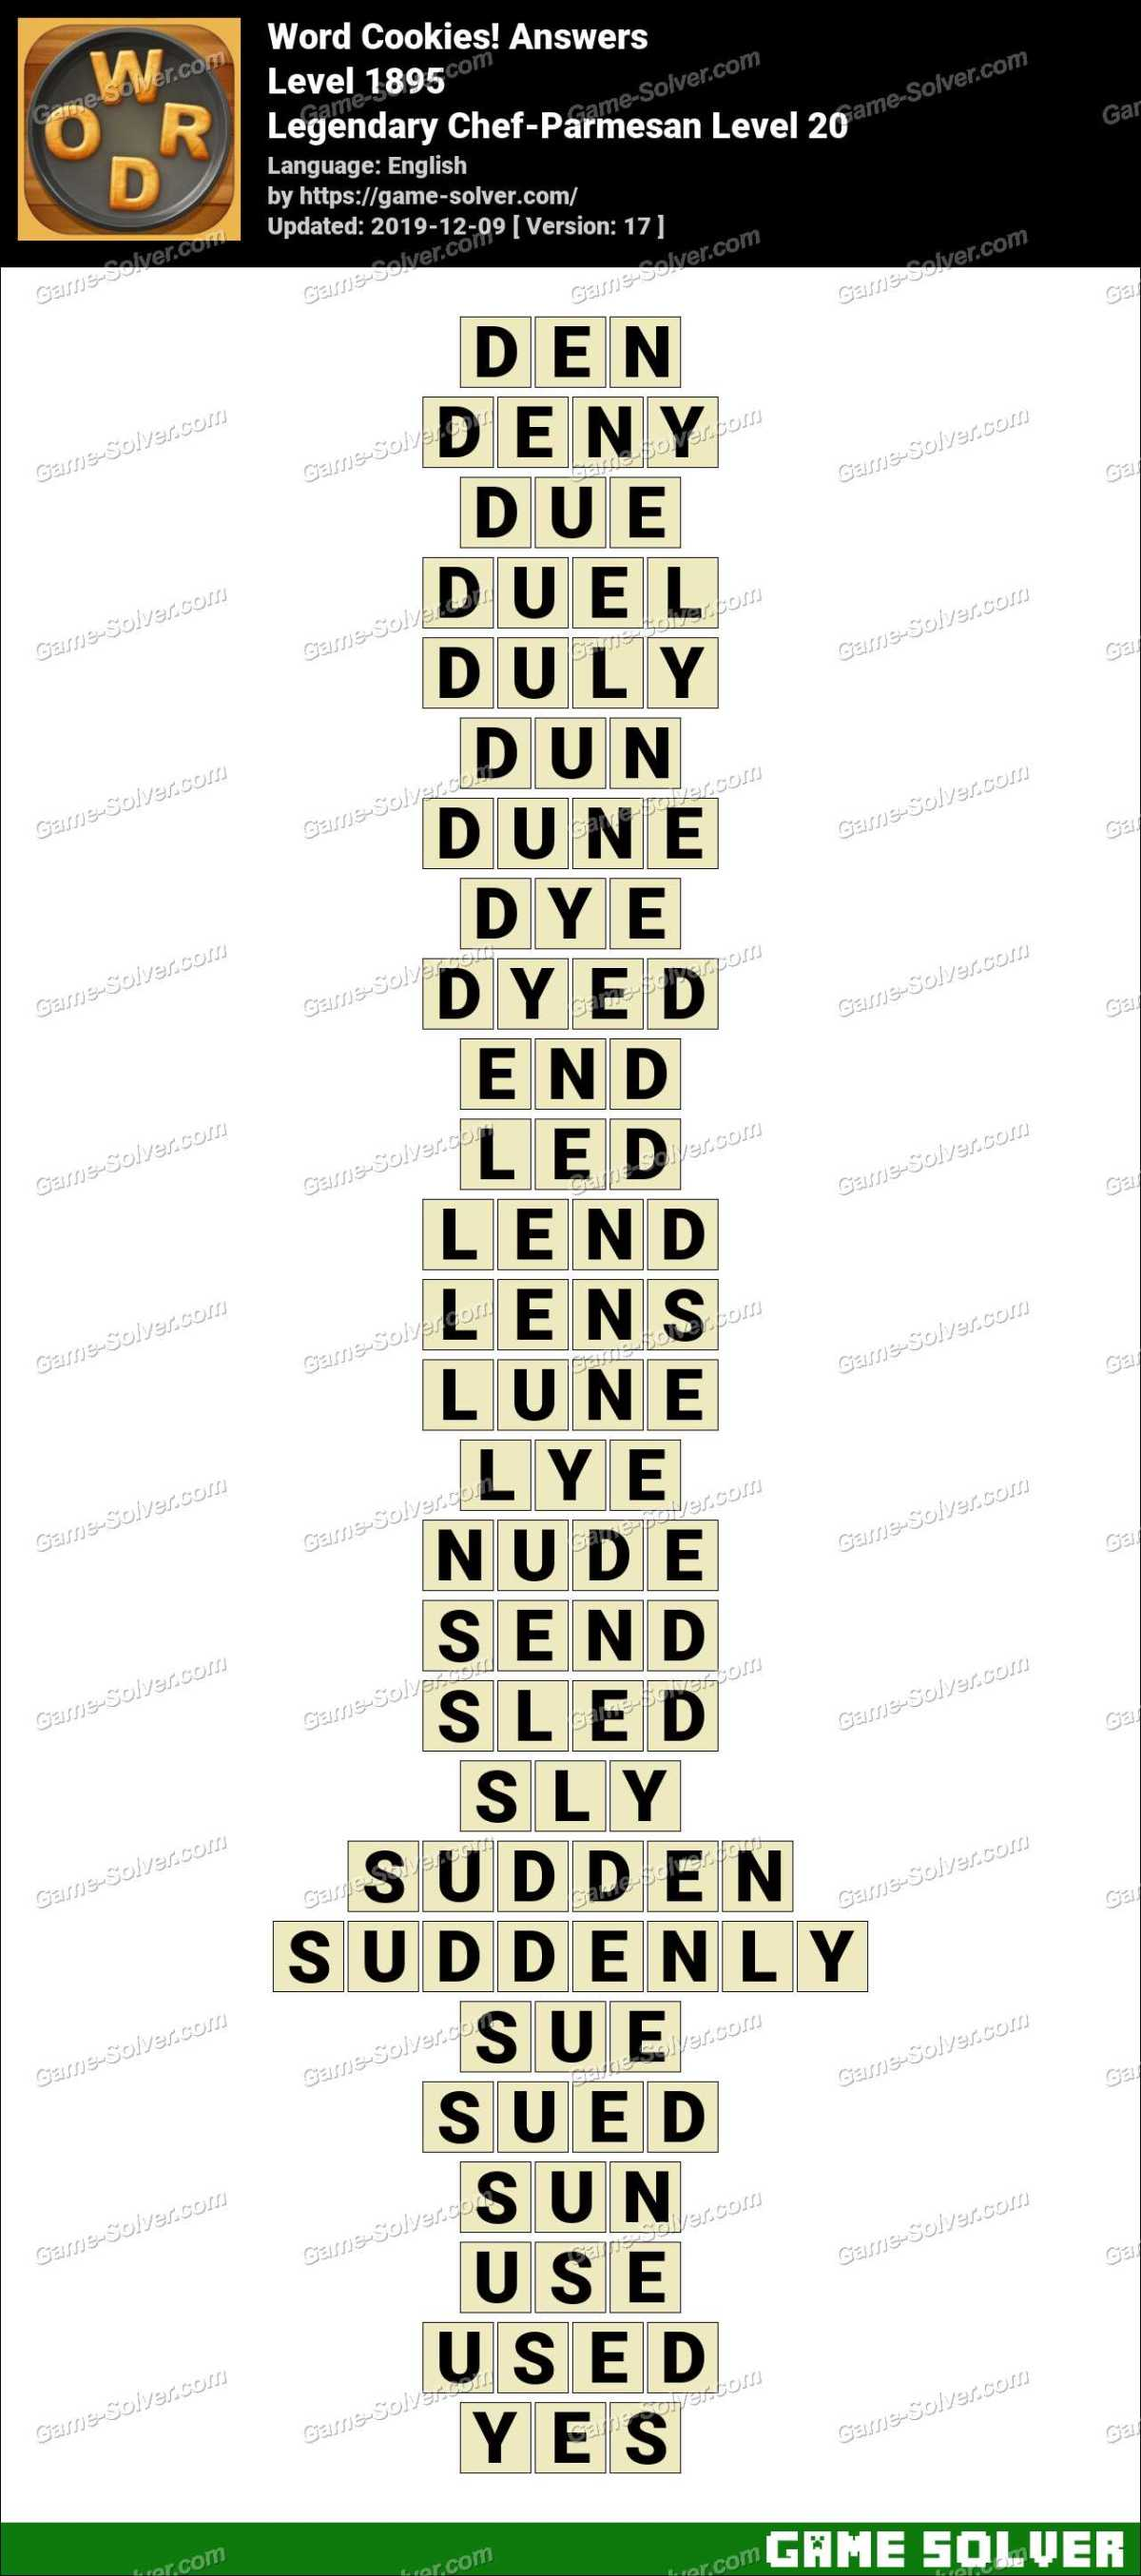 Word Cookies Legendary Chef-Parmesan Level 20 Answers